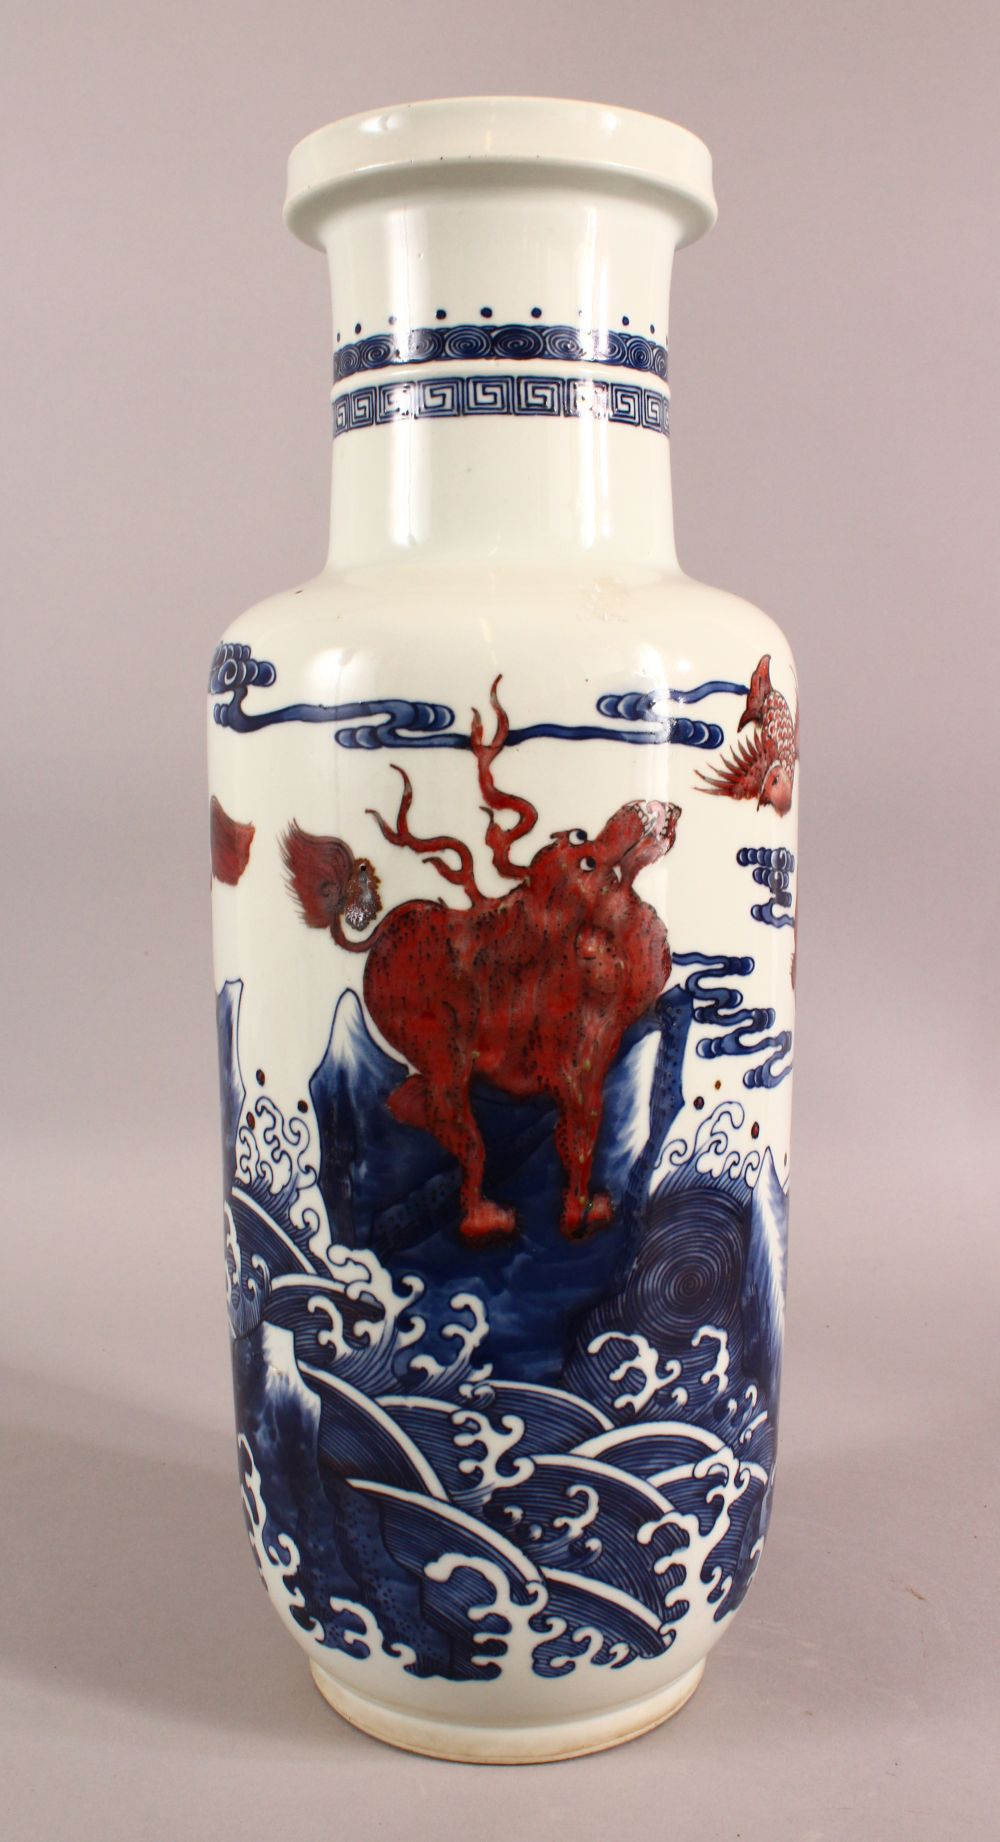 A CHINESE IRON RED, BLUE AND WHITE VASE, the body painted with mythical creatures amongst stylised